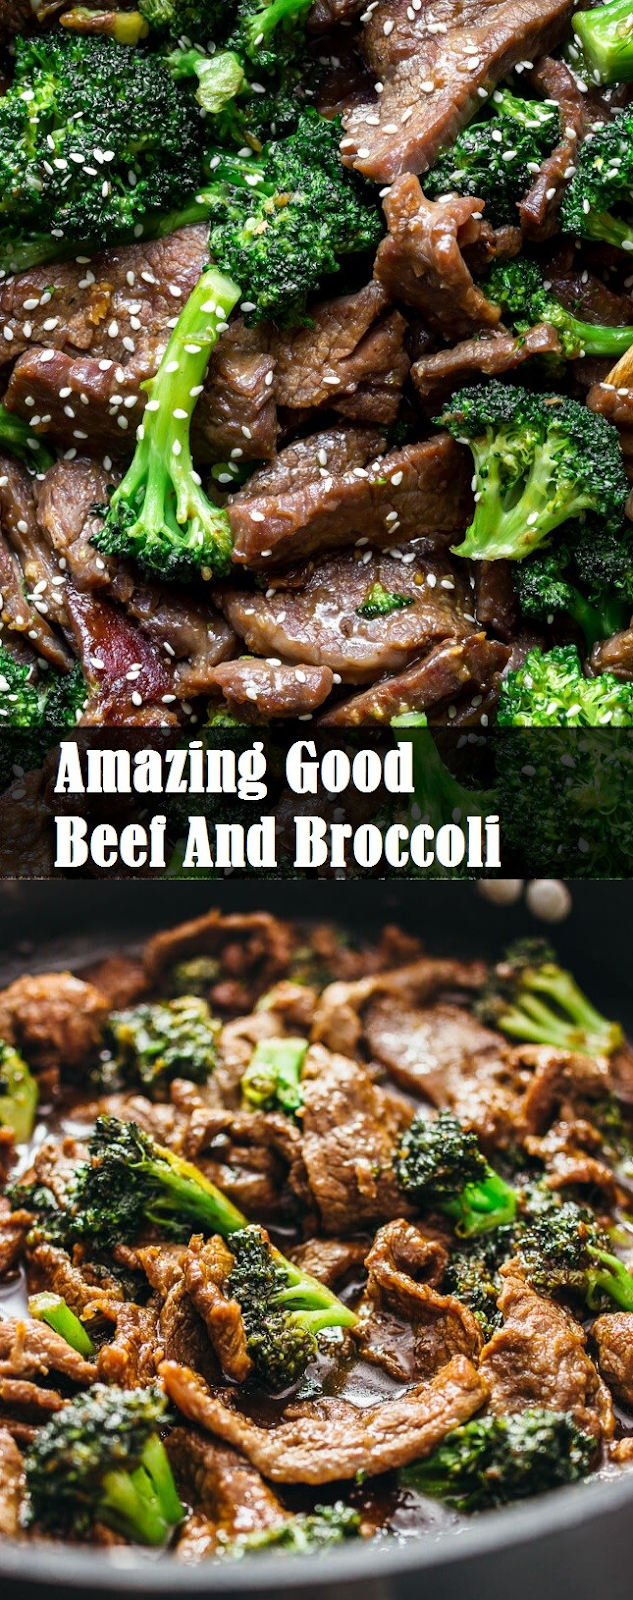 Amazing Good Beef And Broccoli